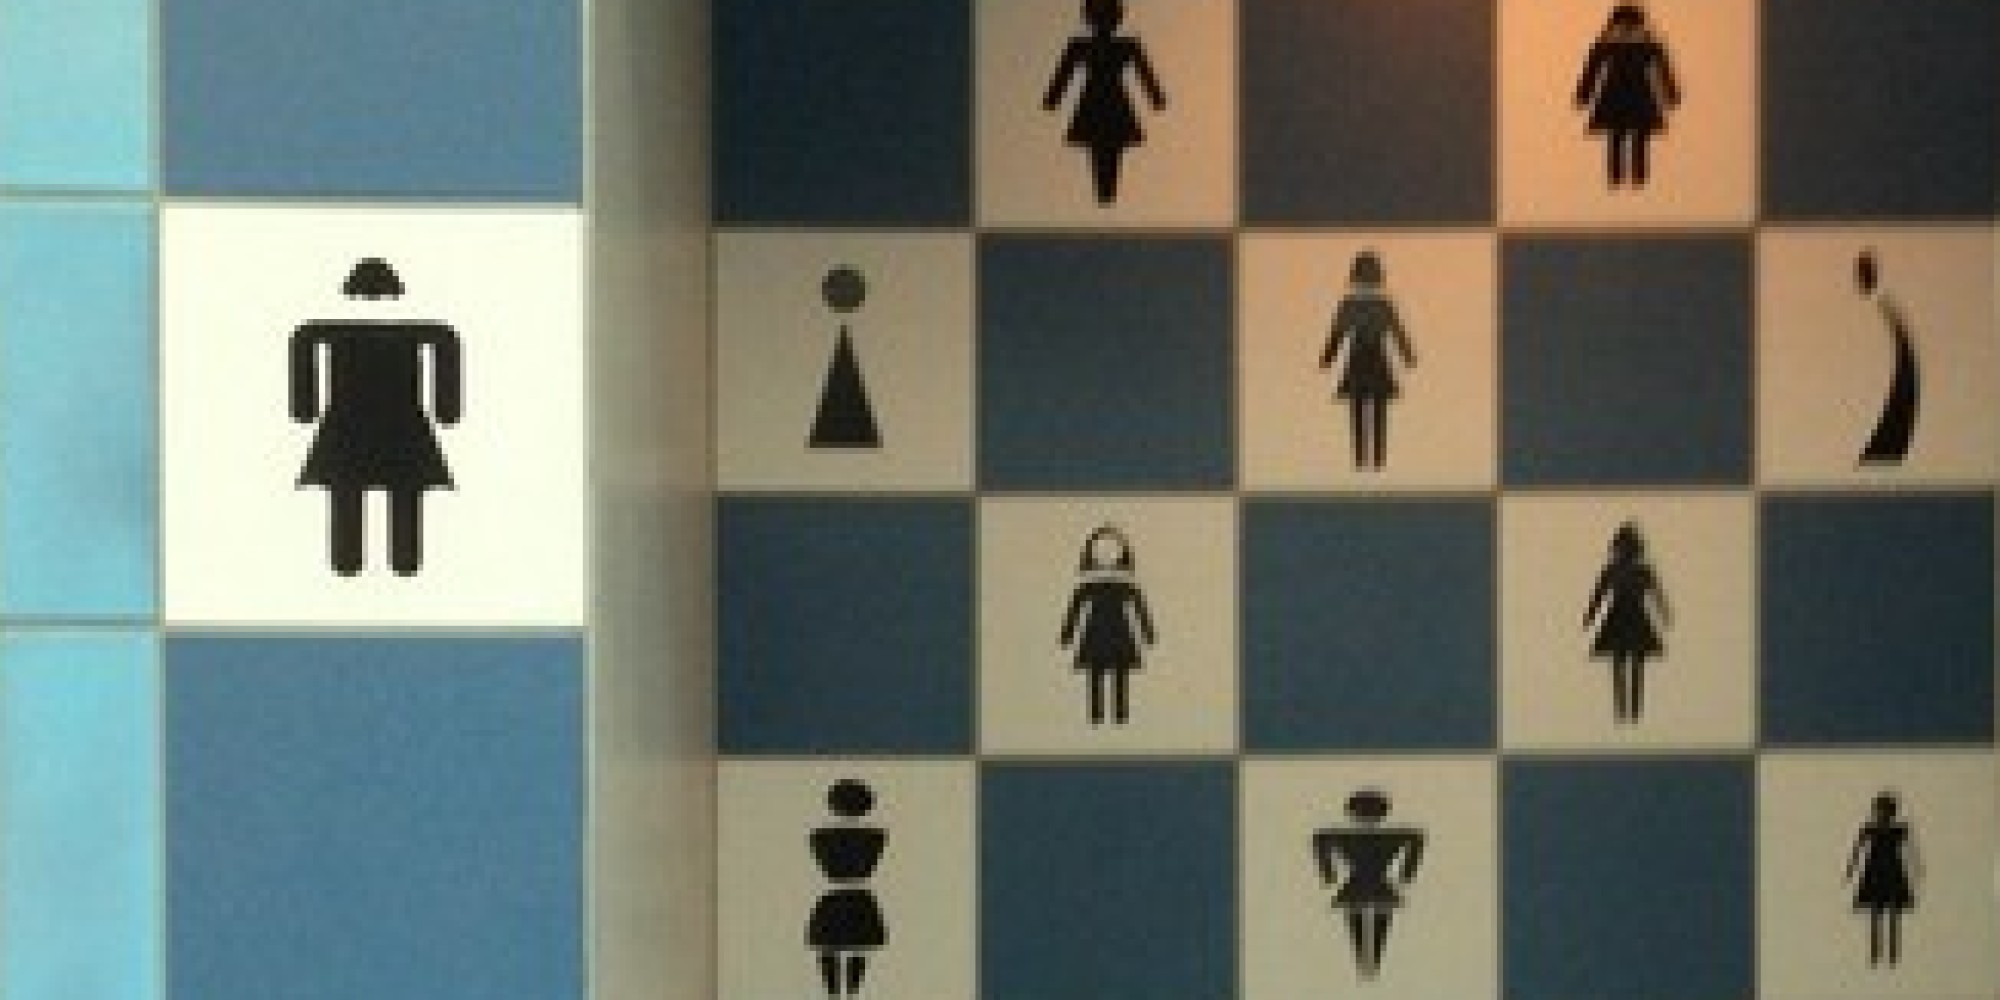 Bathroom Signs South Africa bathroom sign at jacksonville international airport makes us